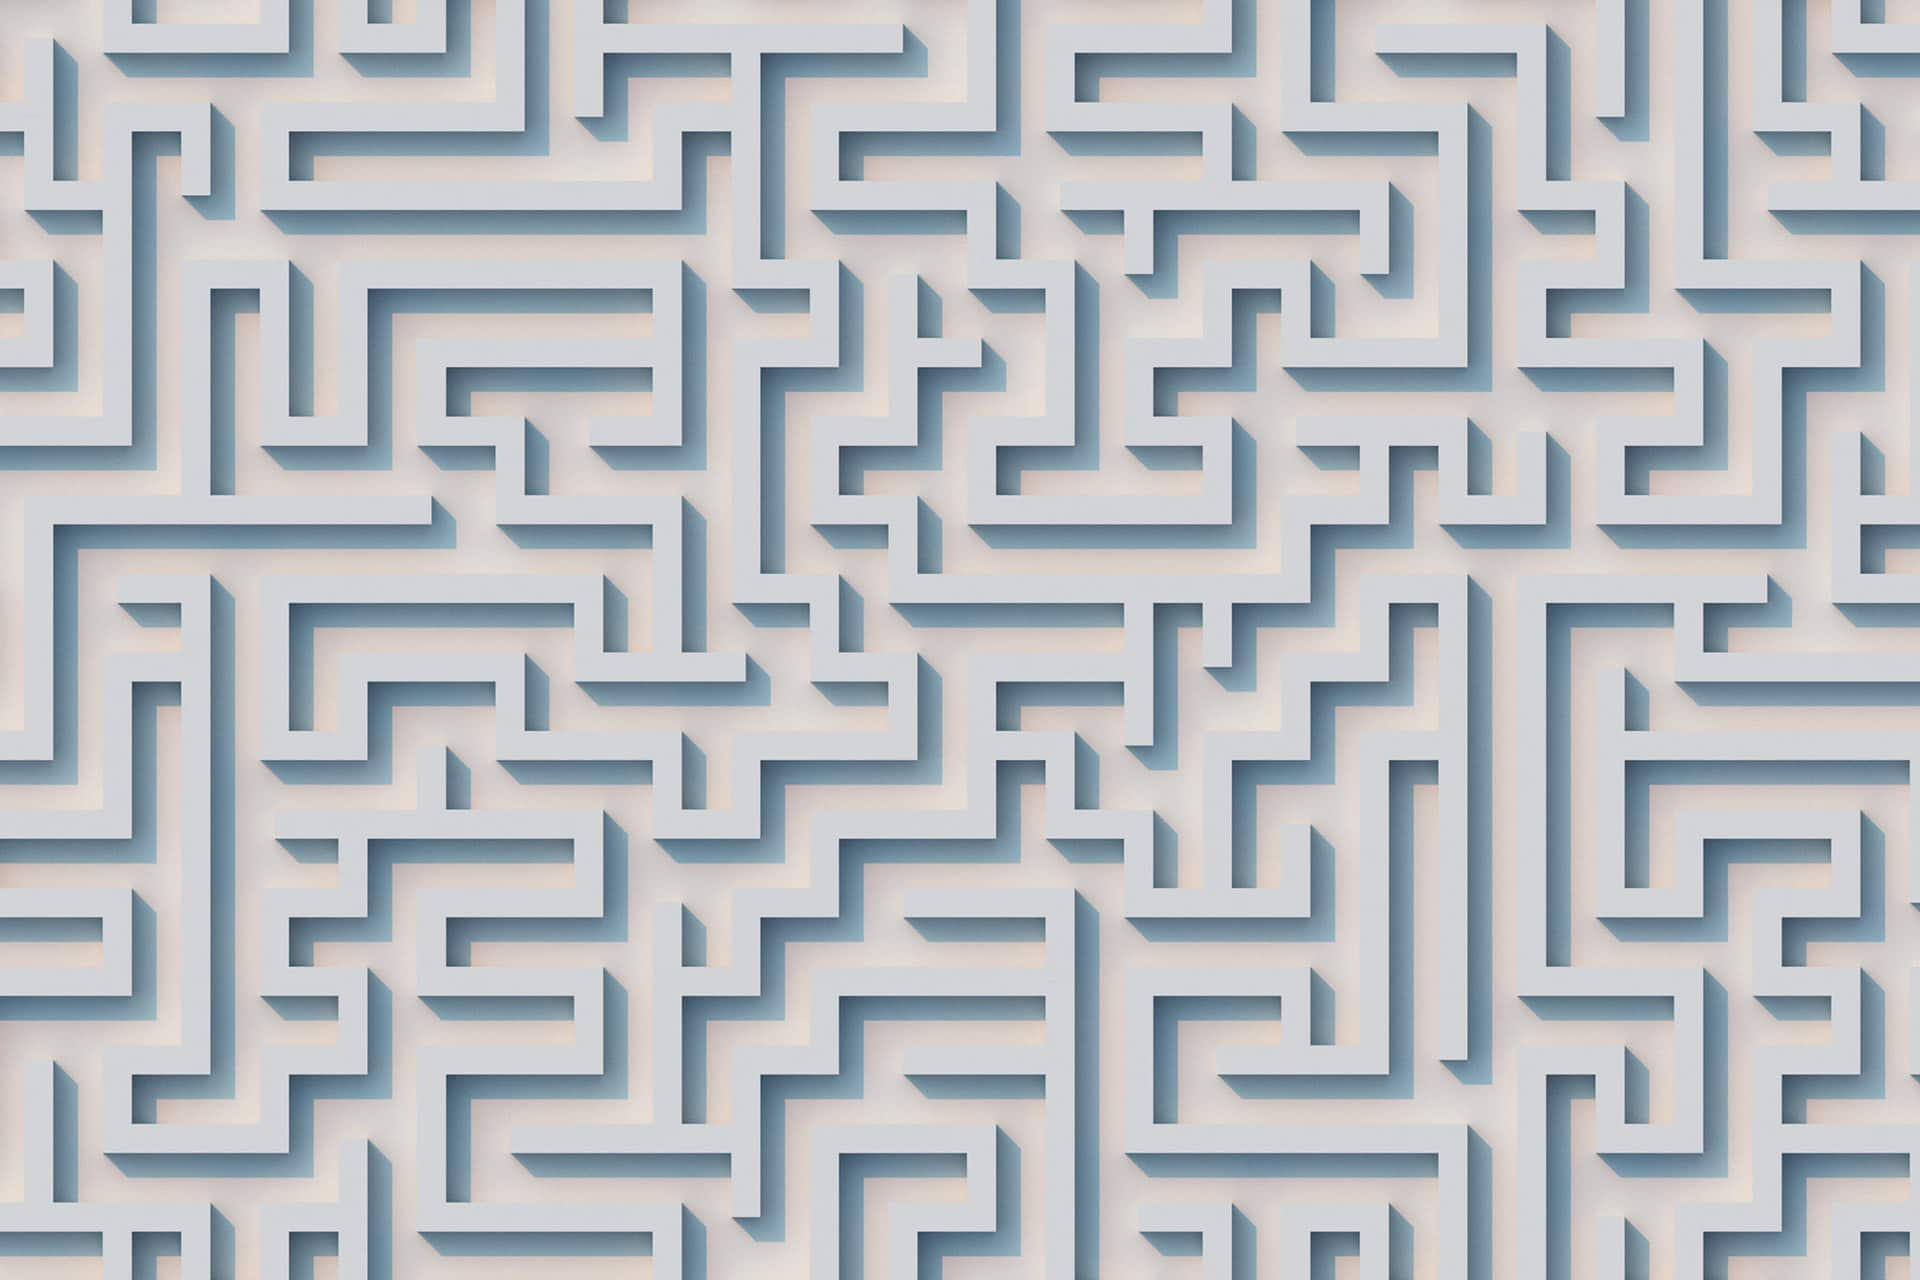 top view of a maze